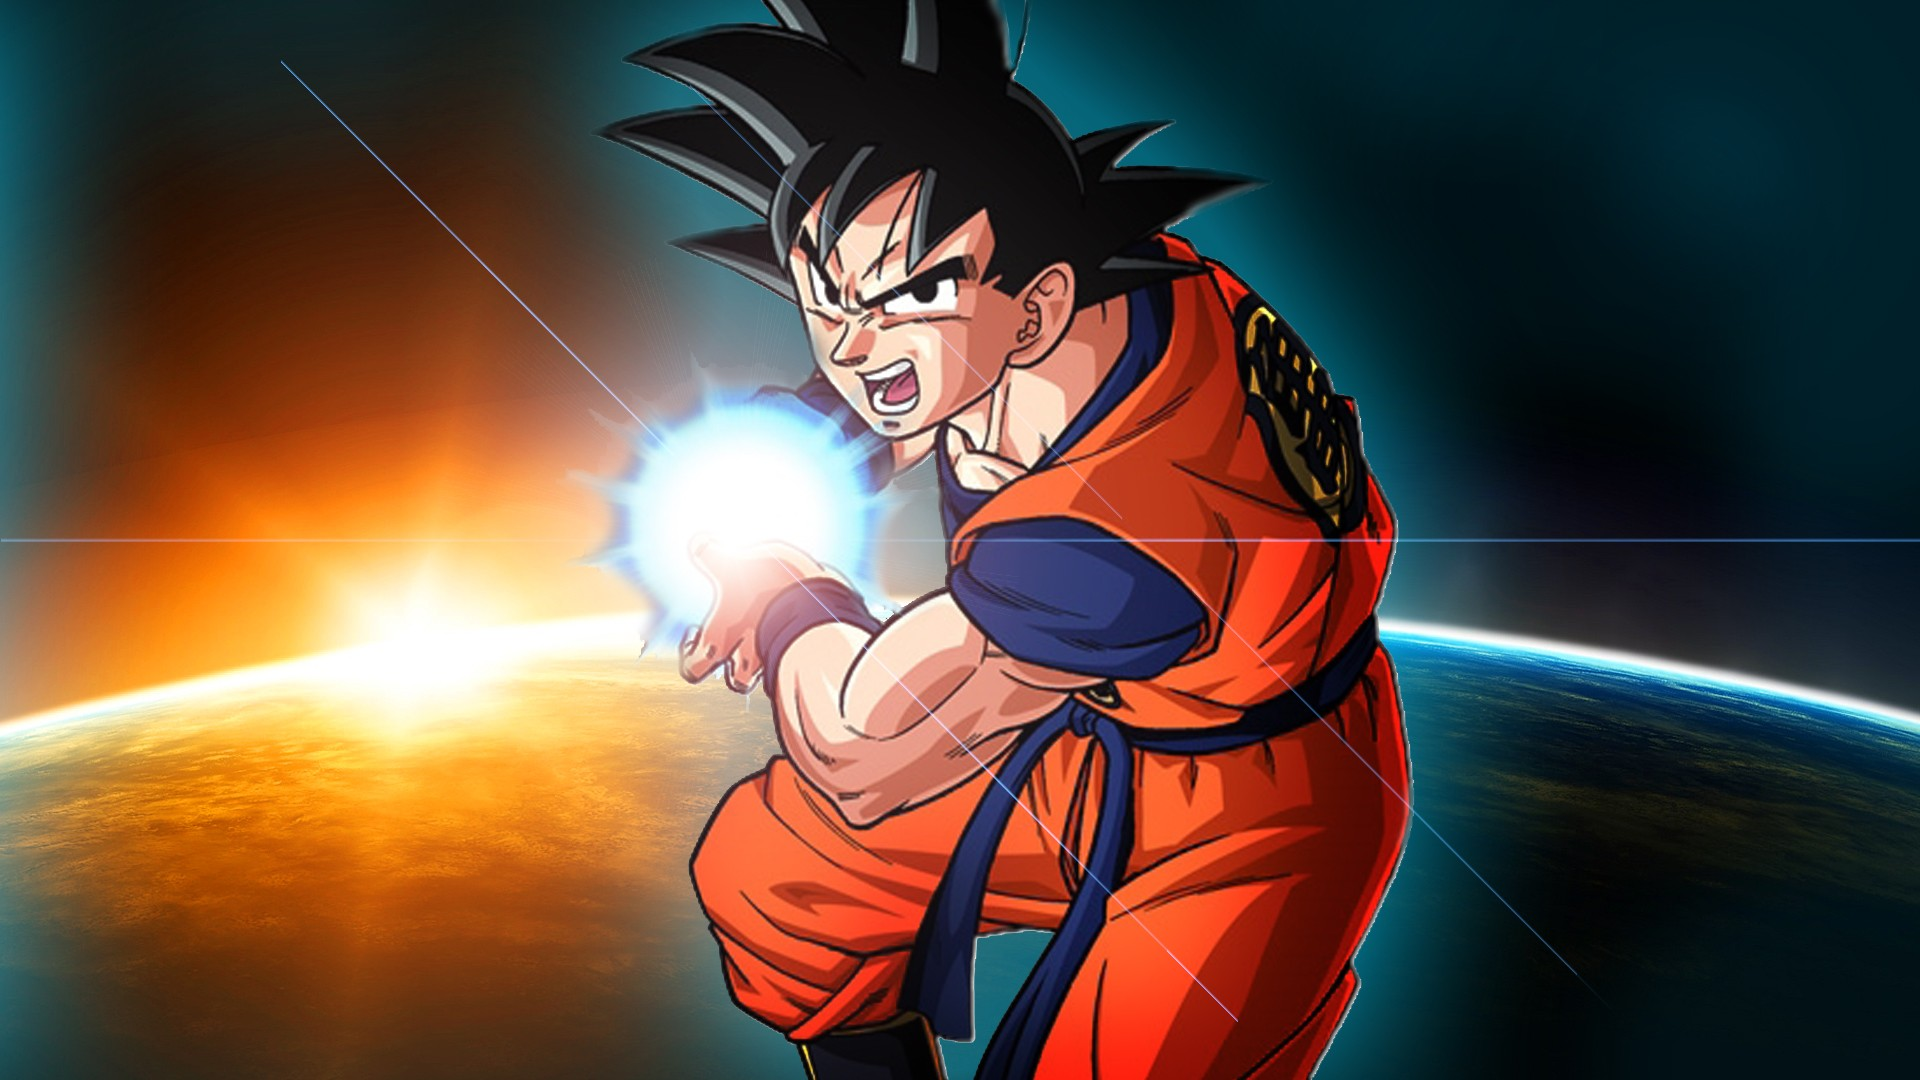 Dragon Ball Z HD Desktop Wallpaper